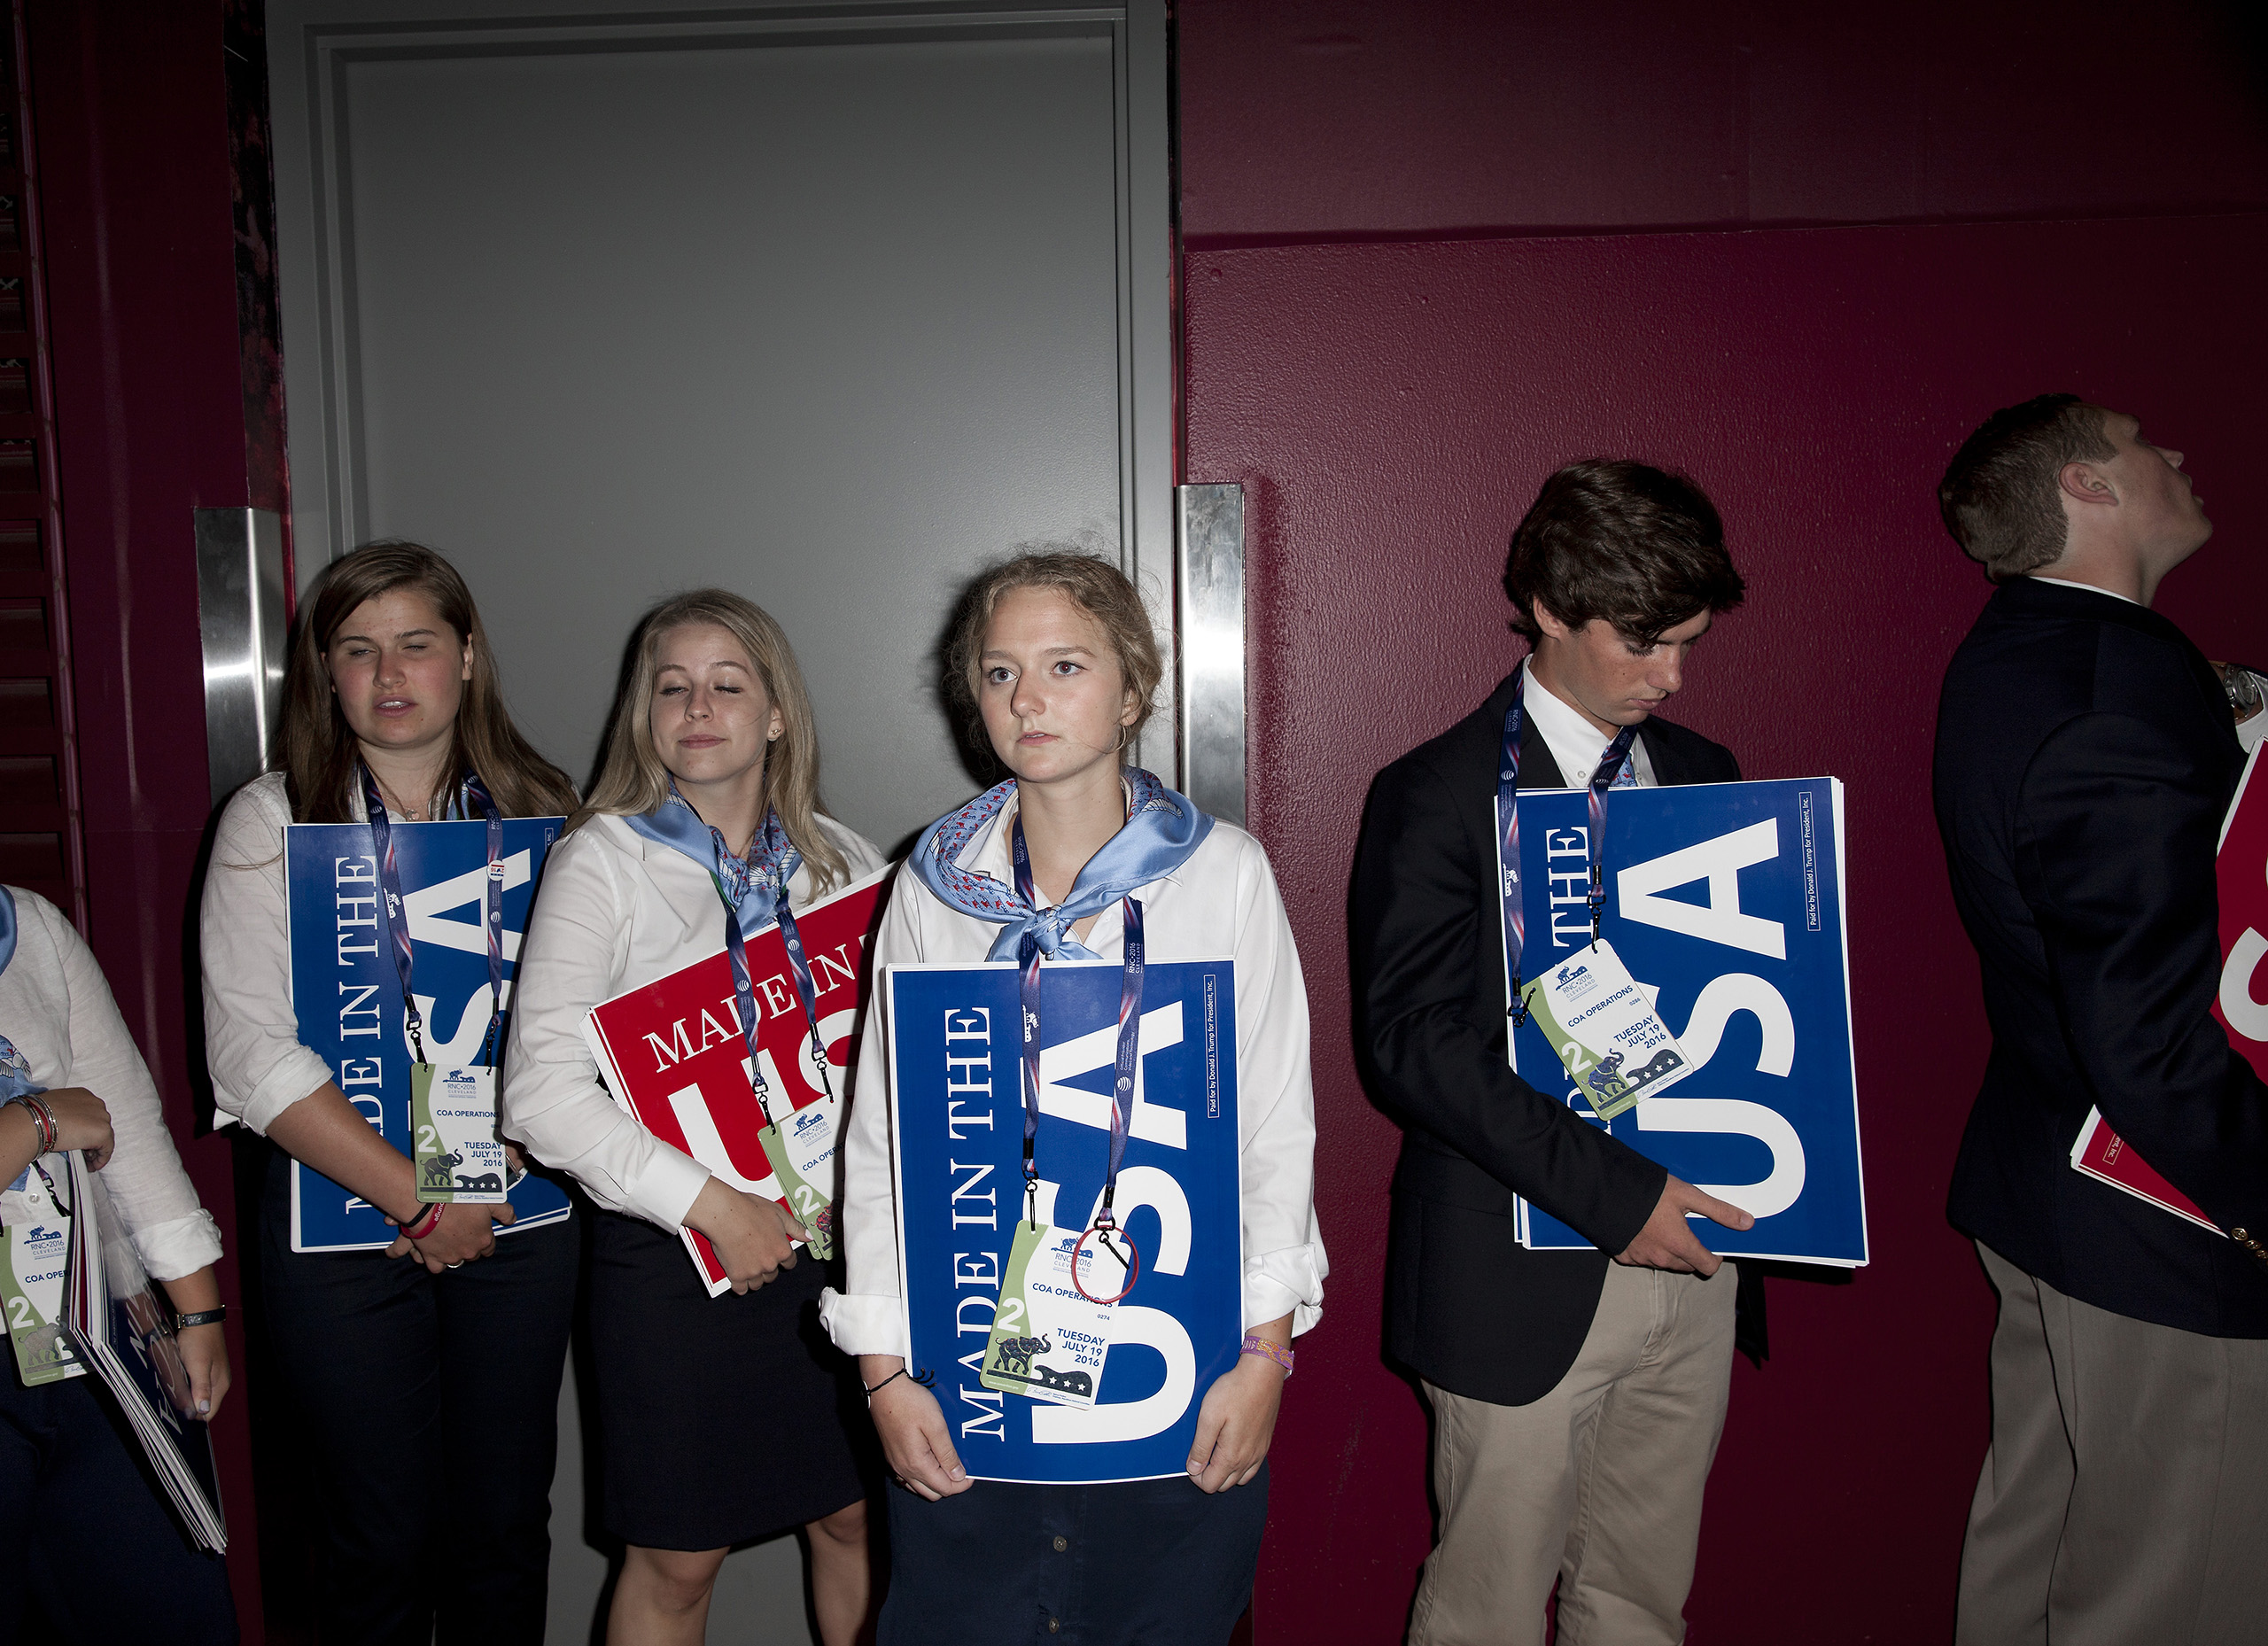 Young attendees at the Republican National Convention on July 19, 2016 at the Quicken Loans Arena in Cleveland.